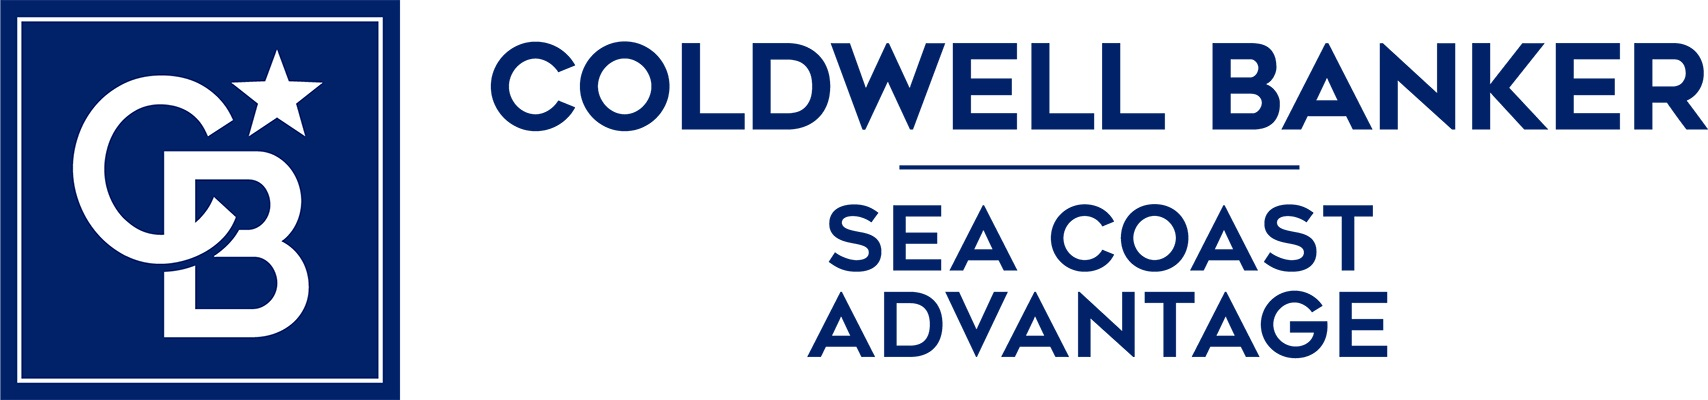 Cynthia Nix - Coldwell Banker Sea Coast Advantage Realty Logo